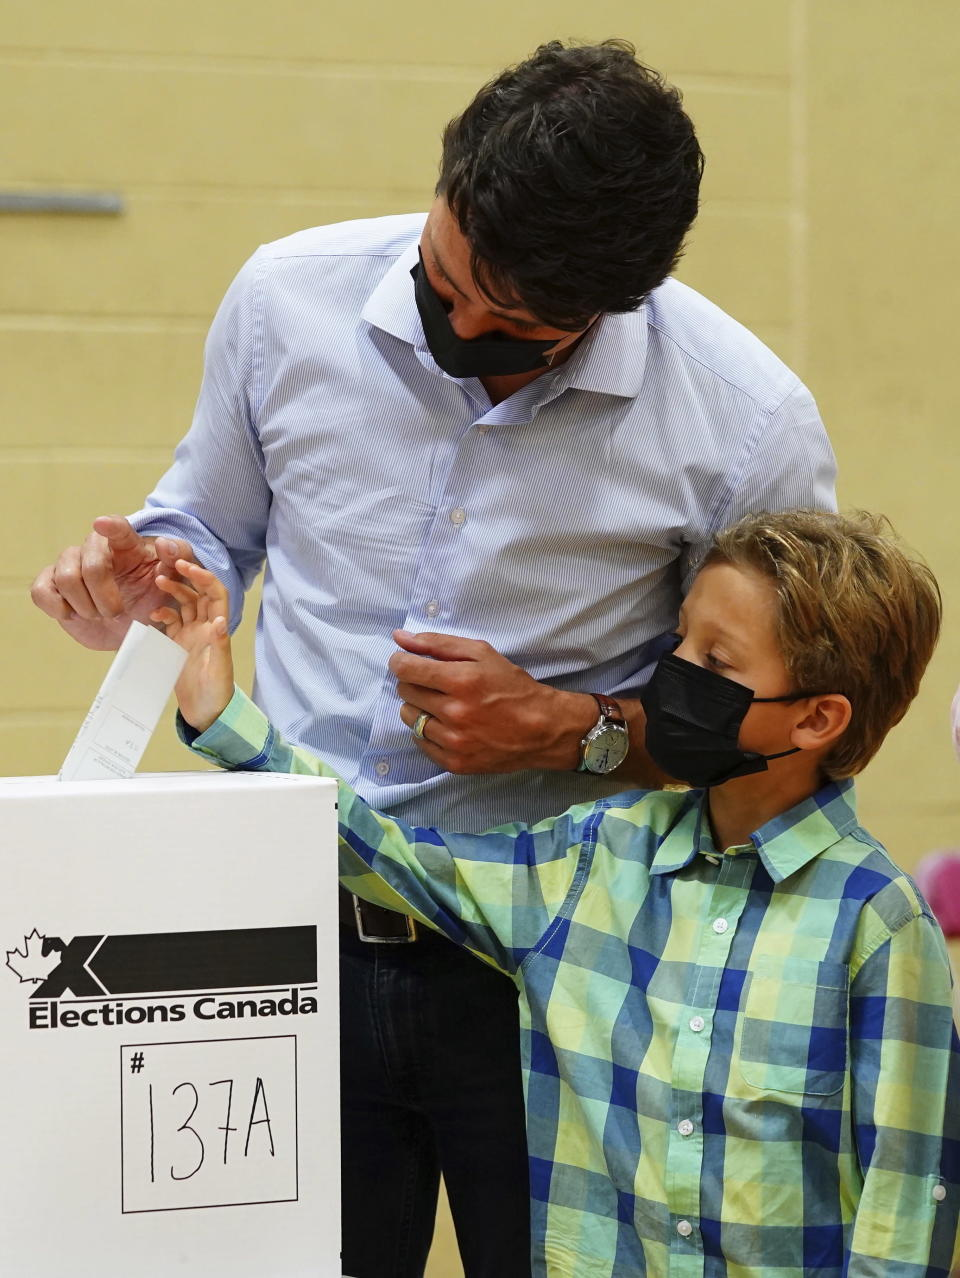 Liberal leader Justin Trudeau casts his ballot in the 44th general federal election as he's joined by his son Hadrien in Montreal on Monday, Sept. 20, 2021. (Sean Kilpatrick/The Canadian Press via AP)